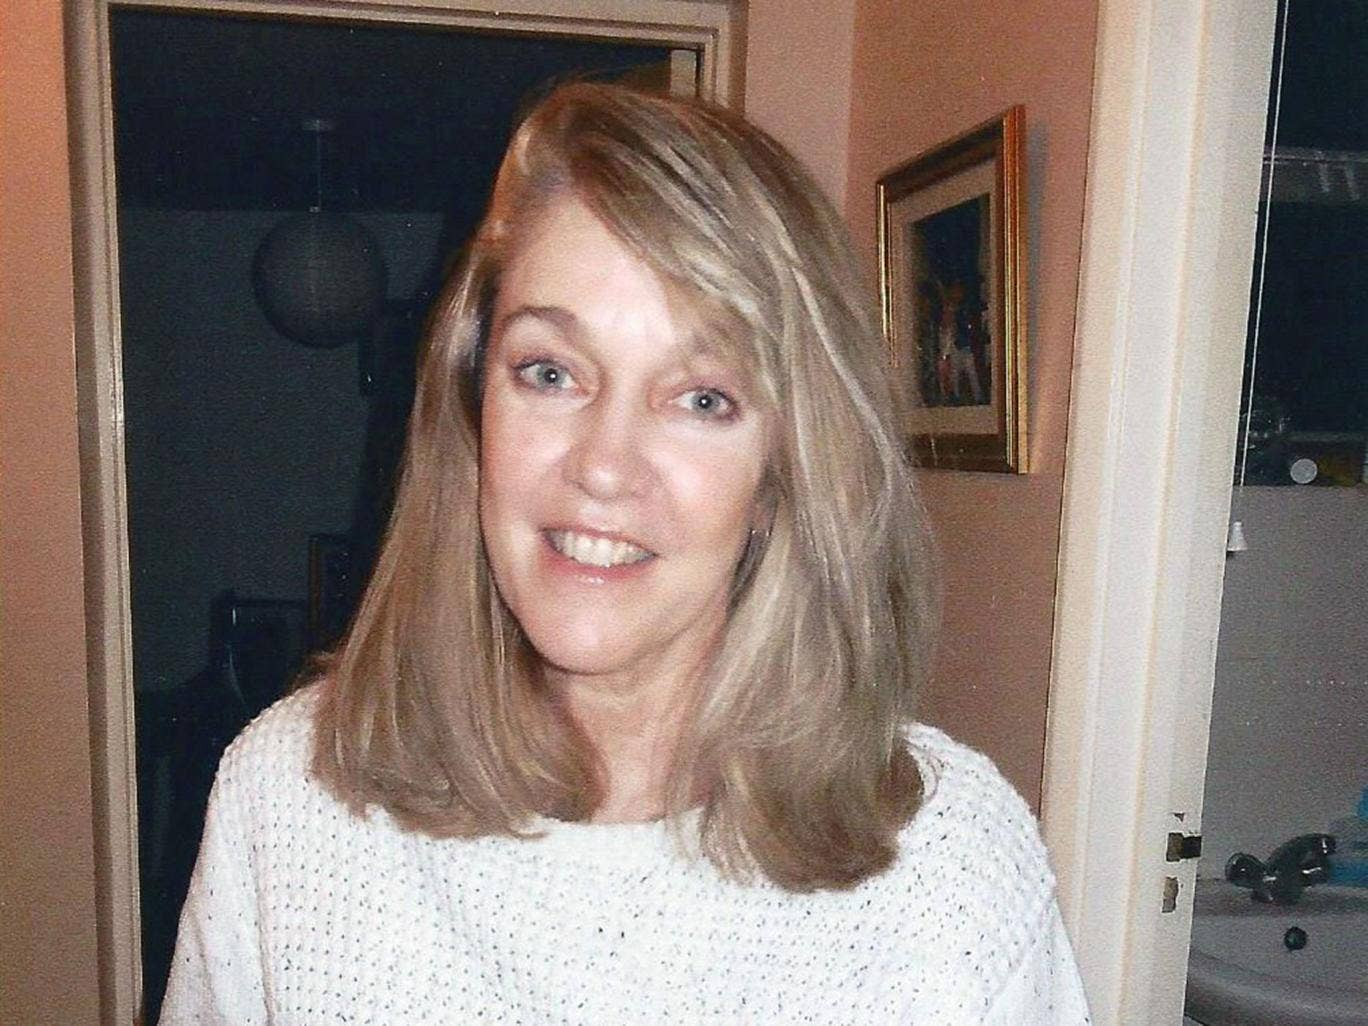 Eileen Clark, who left the US in 1995, says she is the victim of a 'malicious prosecution'